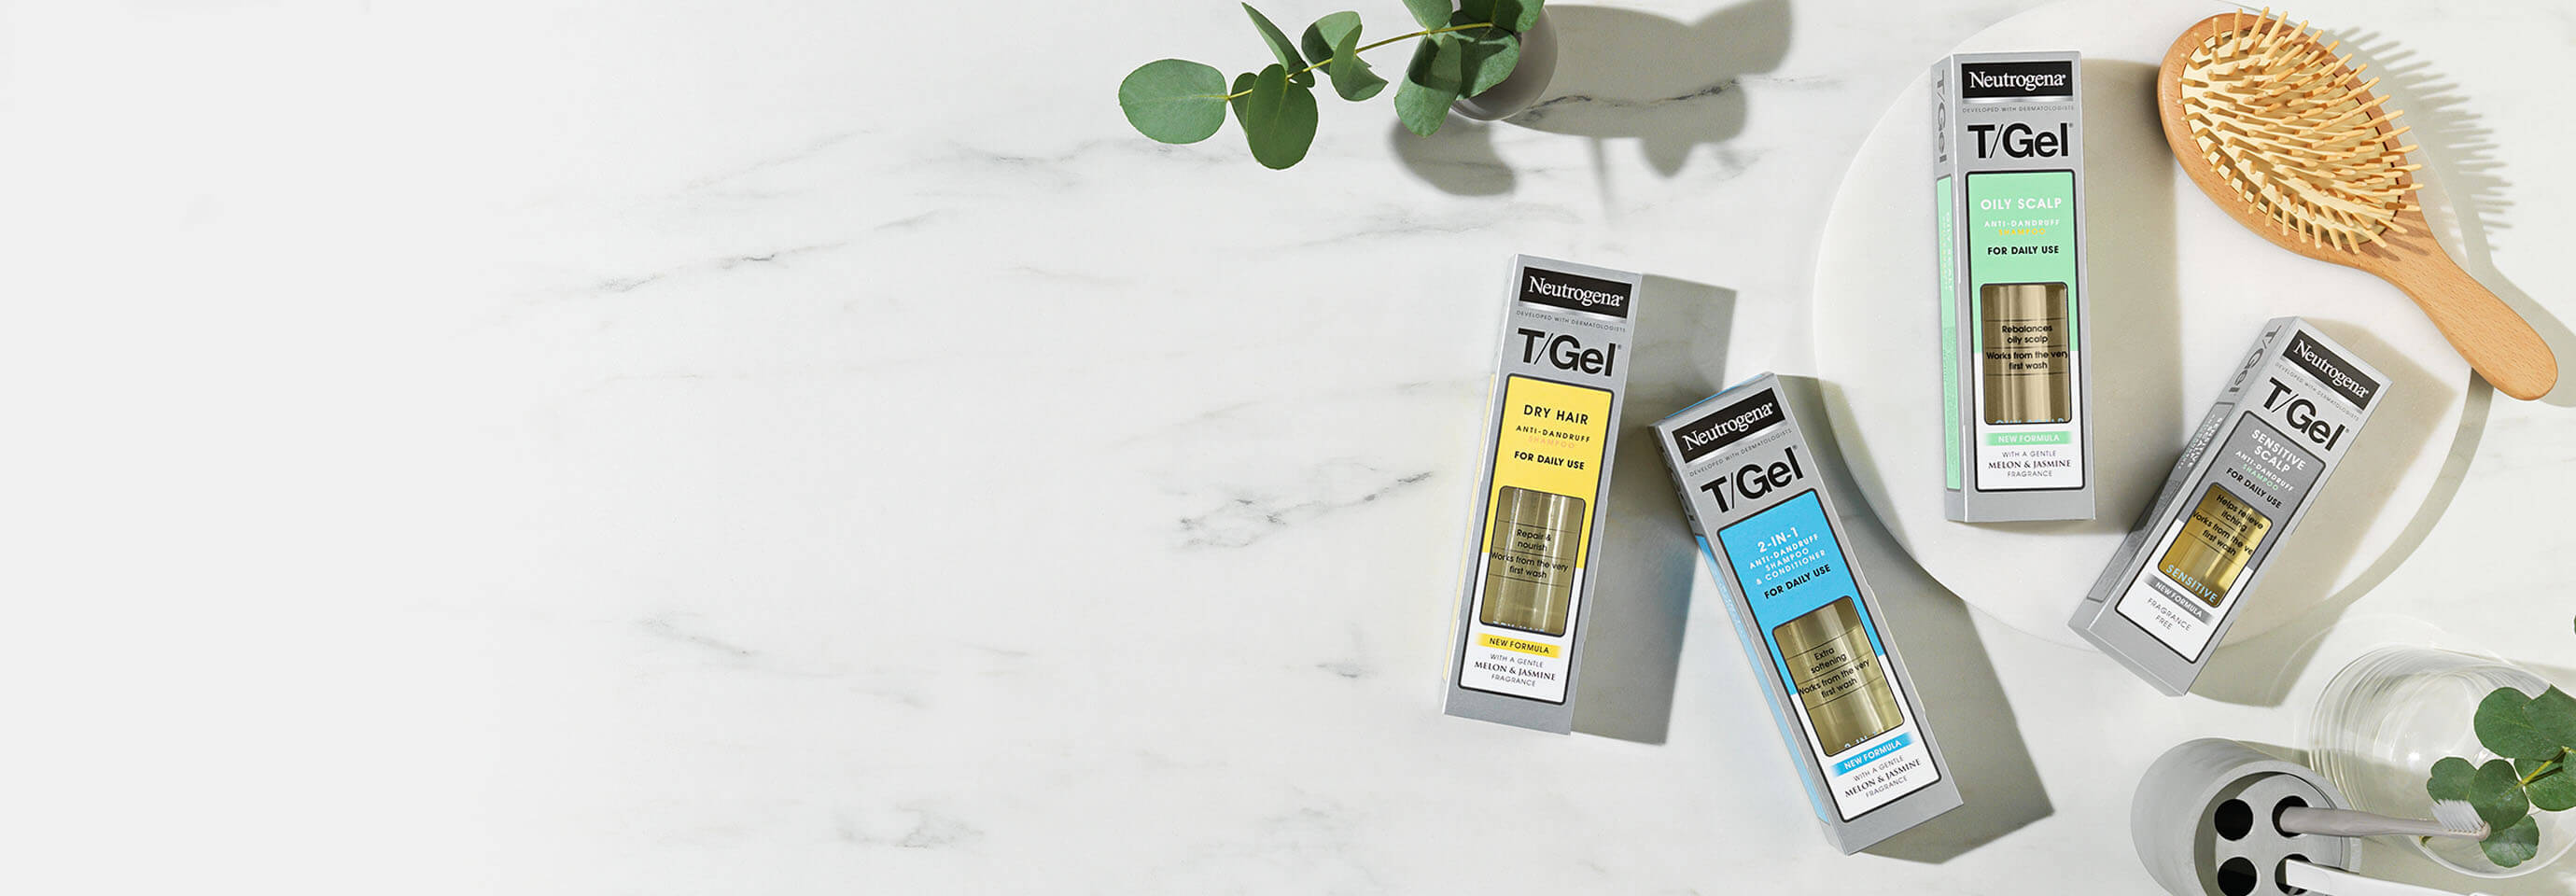 T/Gel. Shampoos designed to help clear your dandruff and fight flakes.